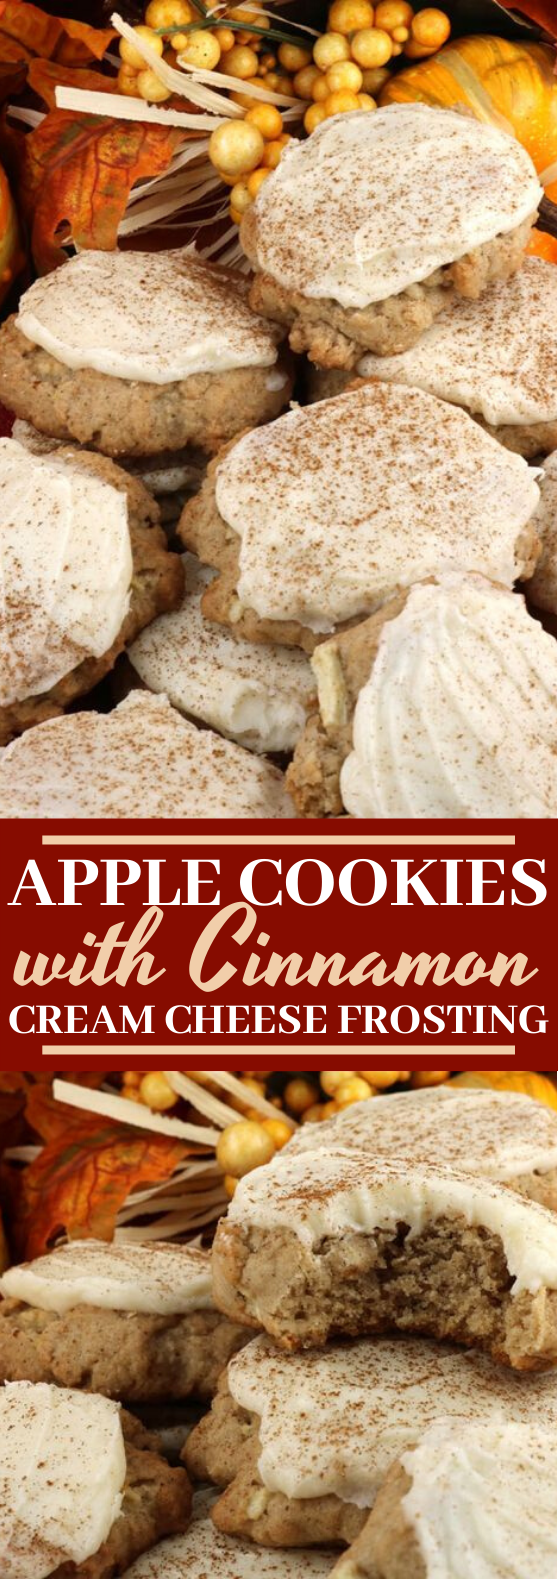 Apple Cookies with Cinnamon Cream Cheese Frosting #cookies #recipes #baking #fall #desserts